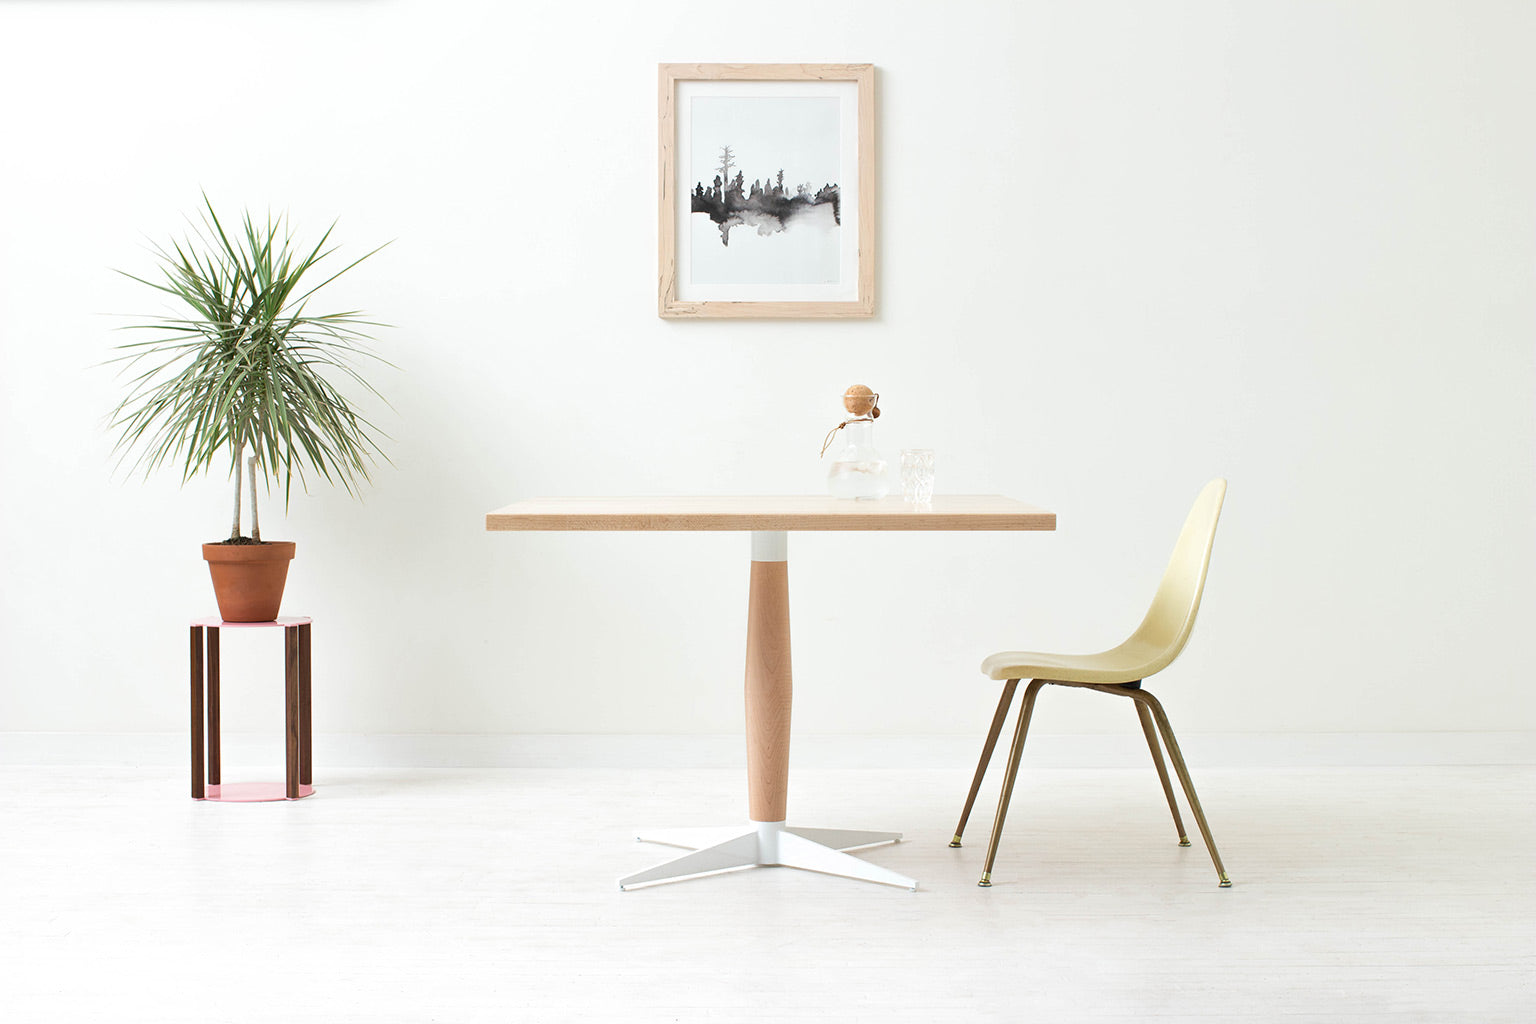 Mid-Century Danish Modern Nook Pedestal Dining Table. Handmade from Solid Wood and Powder Coated / Painted, Chrome, Copper or Brass Plated Steel by Wake the Tree Furniture Co.